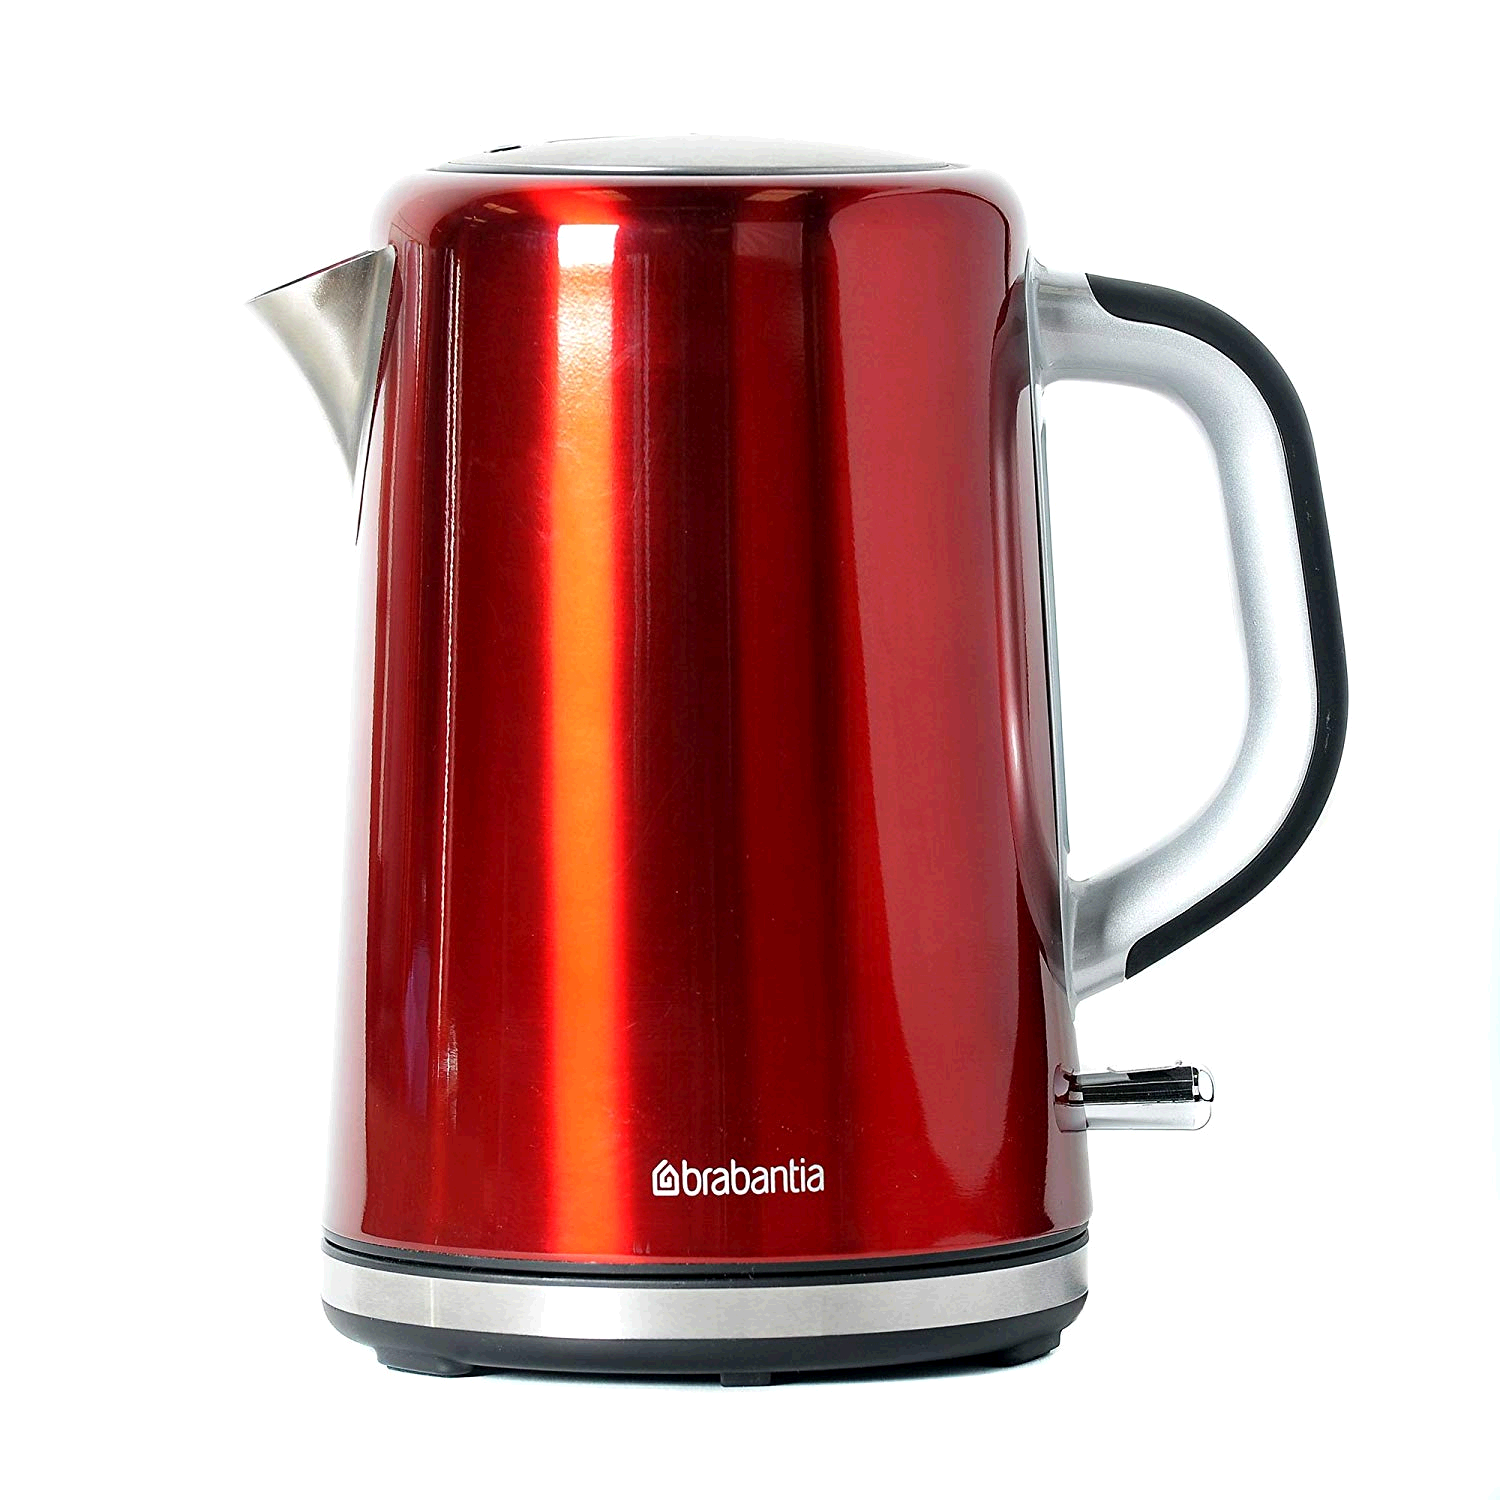 Brabantia 1.7Ltr Soft Grip Kettle Brushed Stainless Steel Red